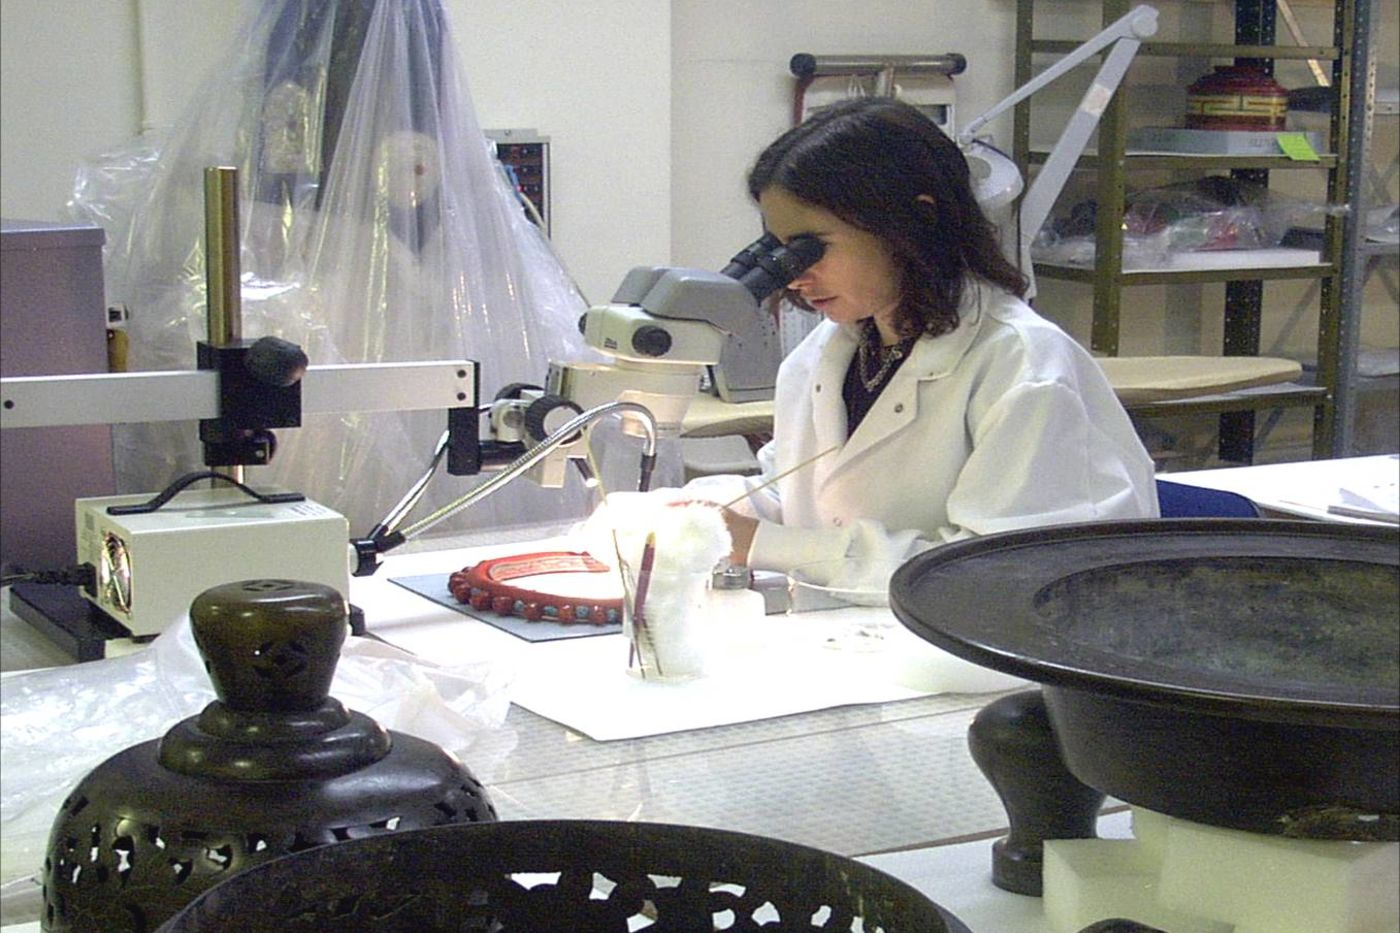 Museum conservator uses a microscope to examine an object